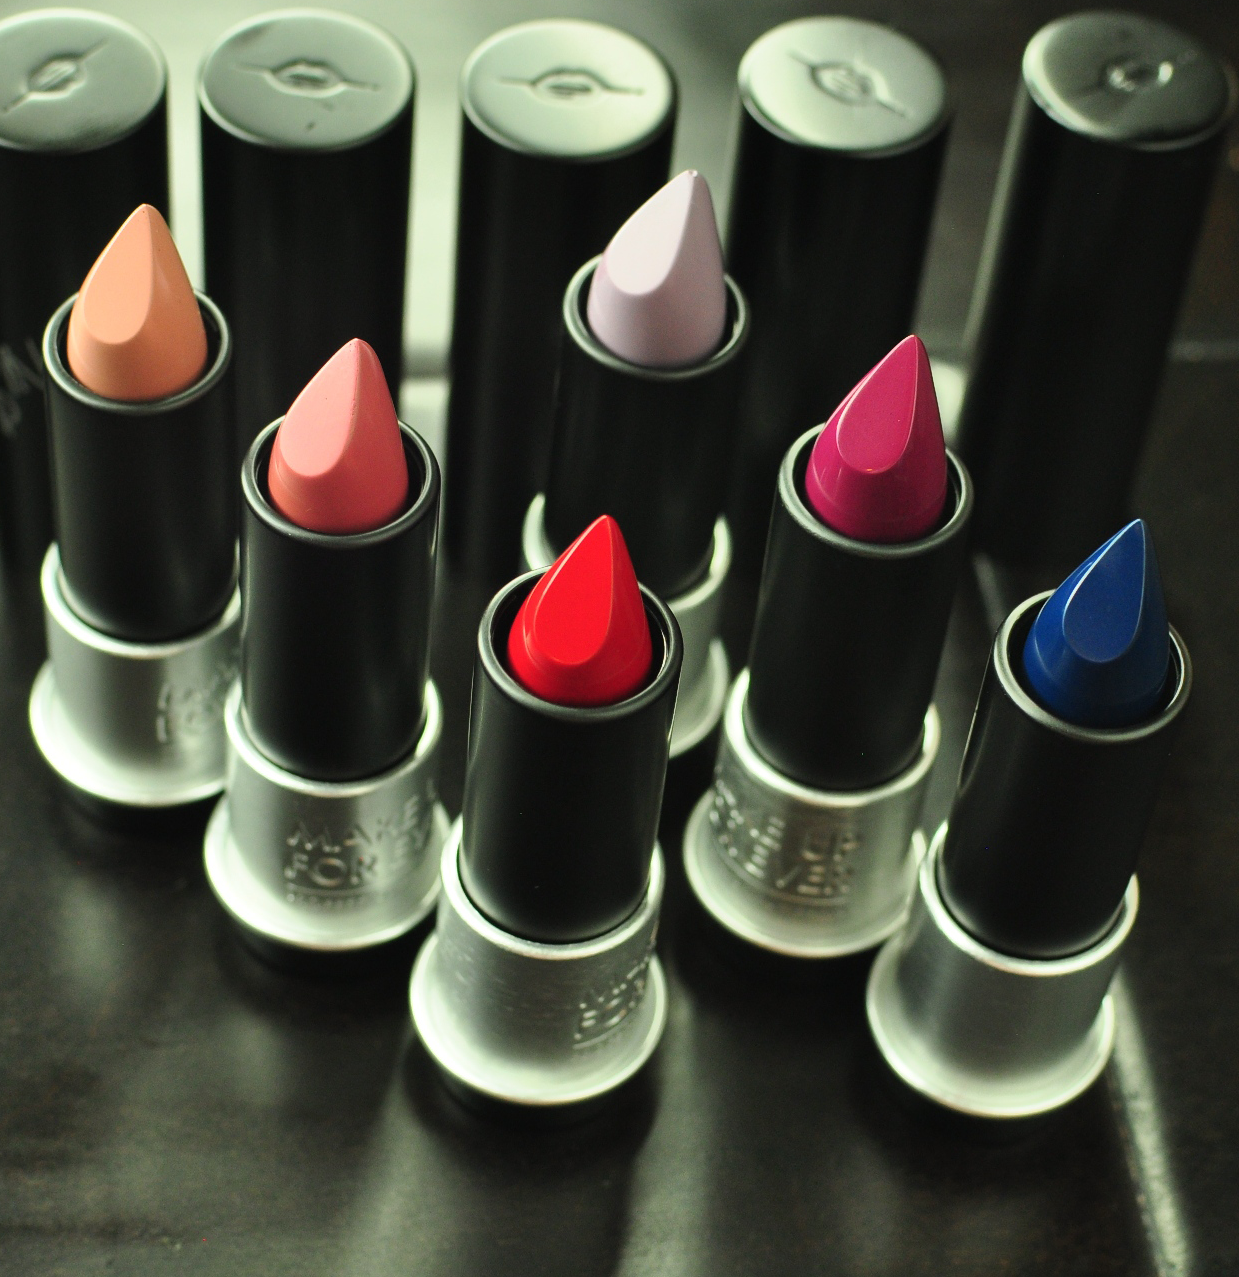 Make Up For Ever Artist Rouge Lipstick Review and Swatches